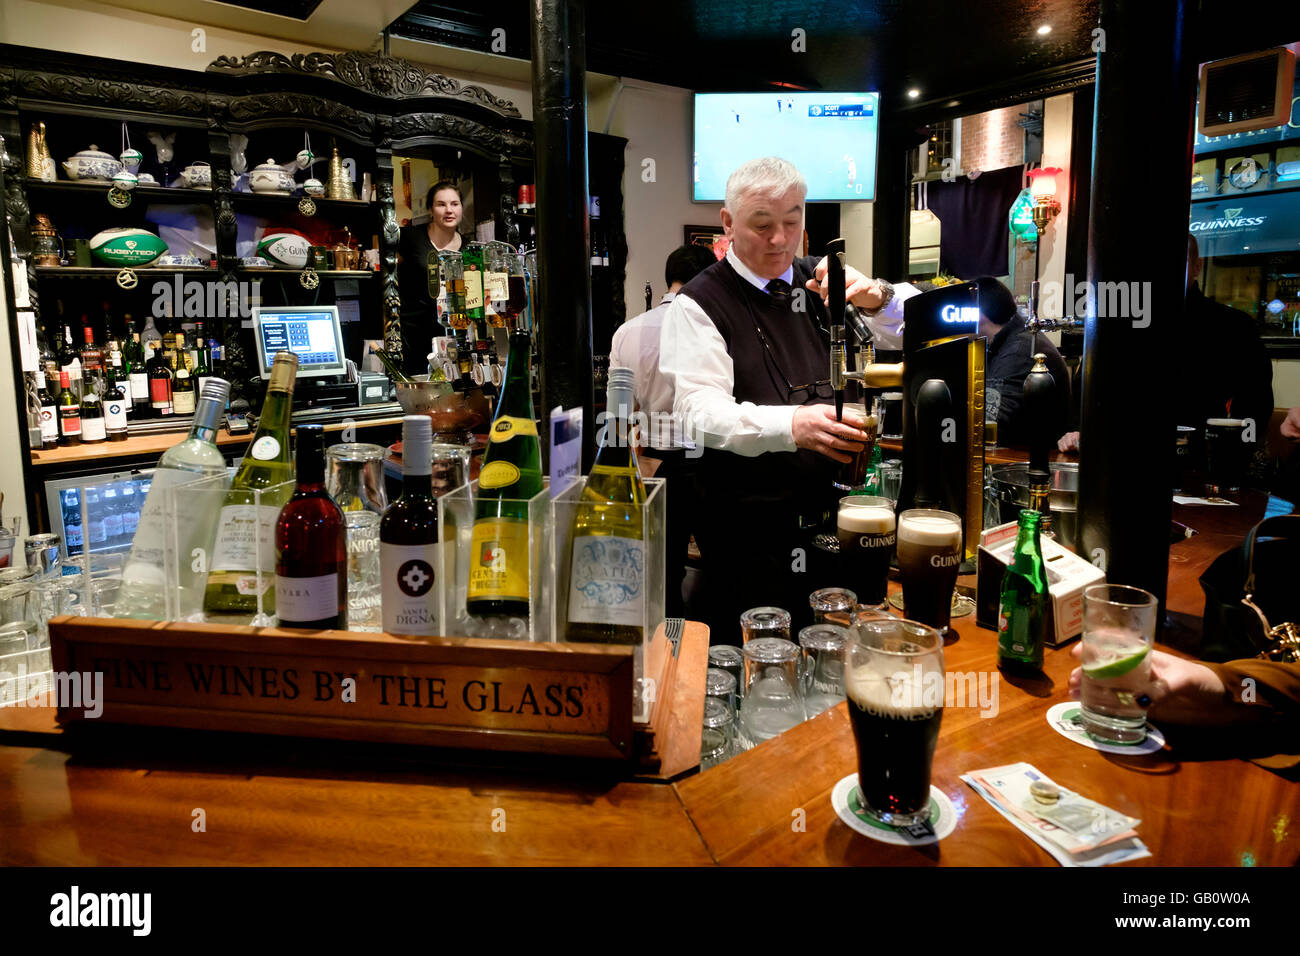 Bartender pouring a pint of beer at The Old Stand pub in Dublin, Republic of Ireland, Europe - Stock Image